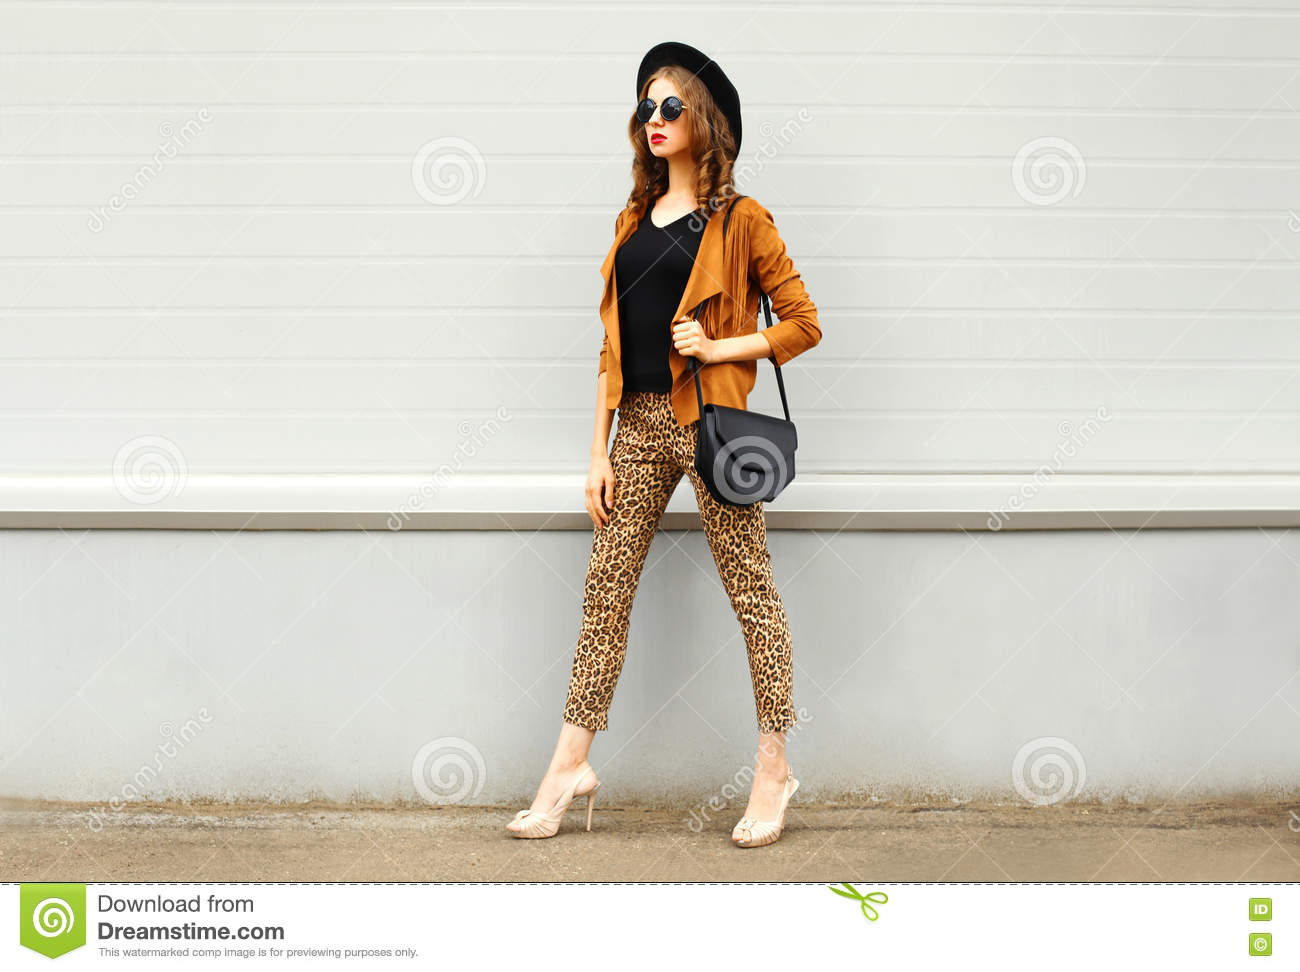 Fashion pretty young woman wearing a retro elegant hat, sunglasses, brown jacket and black handbag walking in city over backg